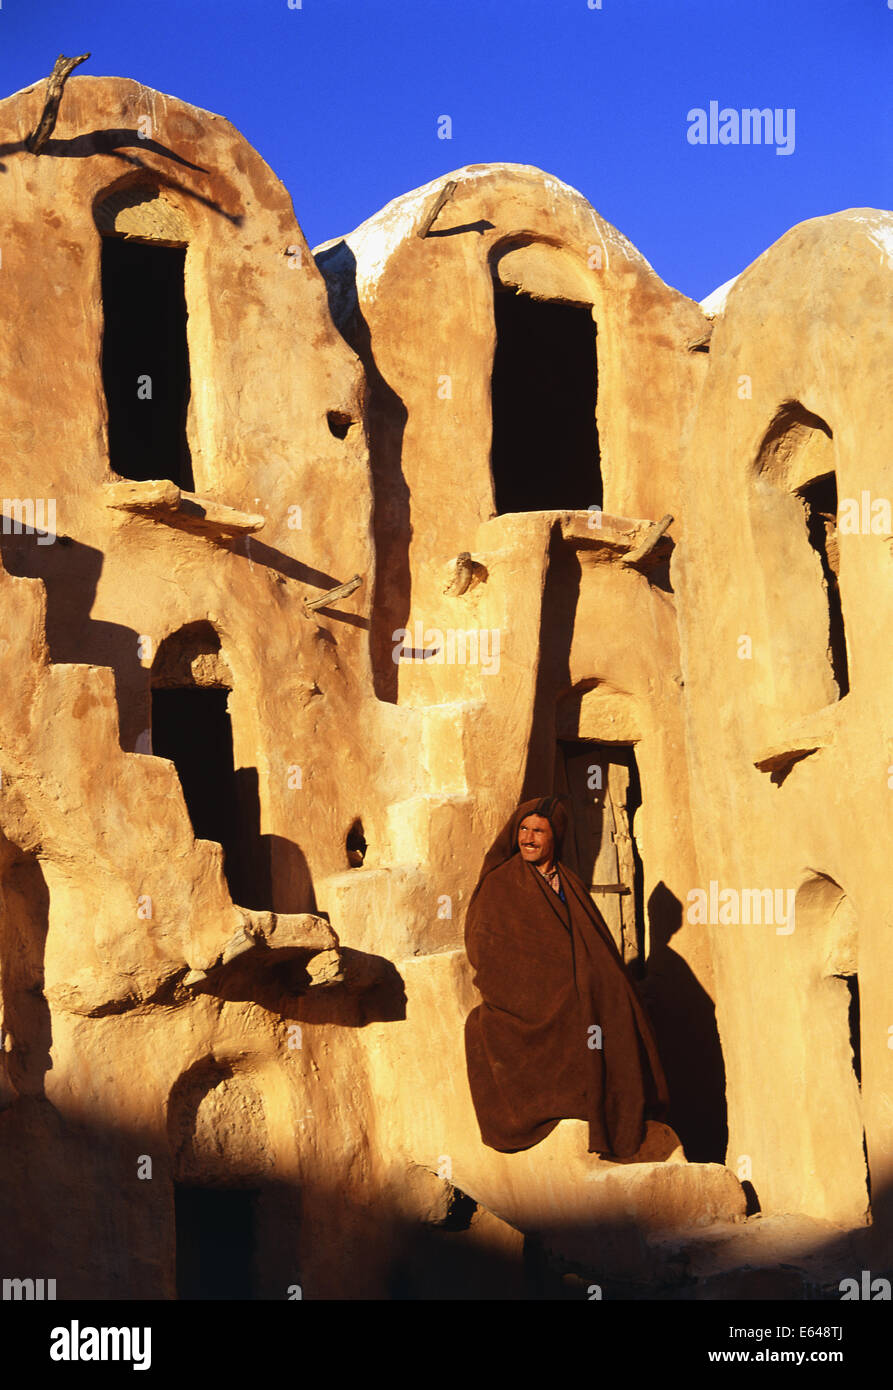 Ksar Ouled Soltrane fortified granary ghorfas cells used in the past to store grain, Tunisia - Stock Image